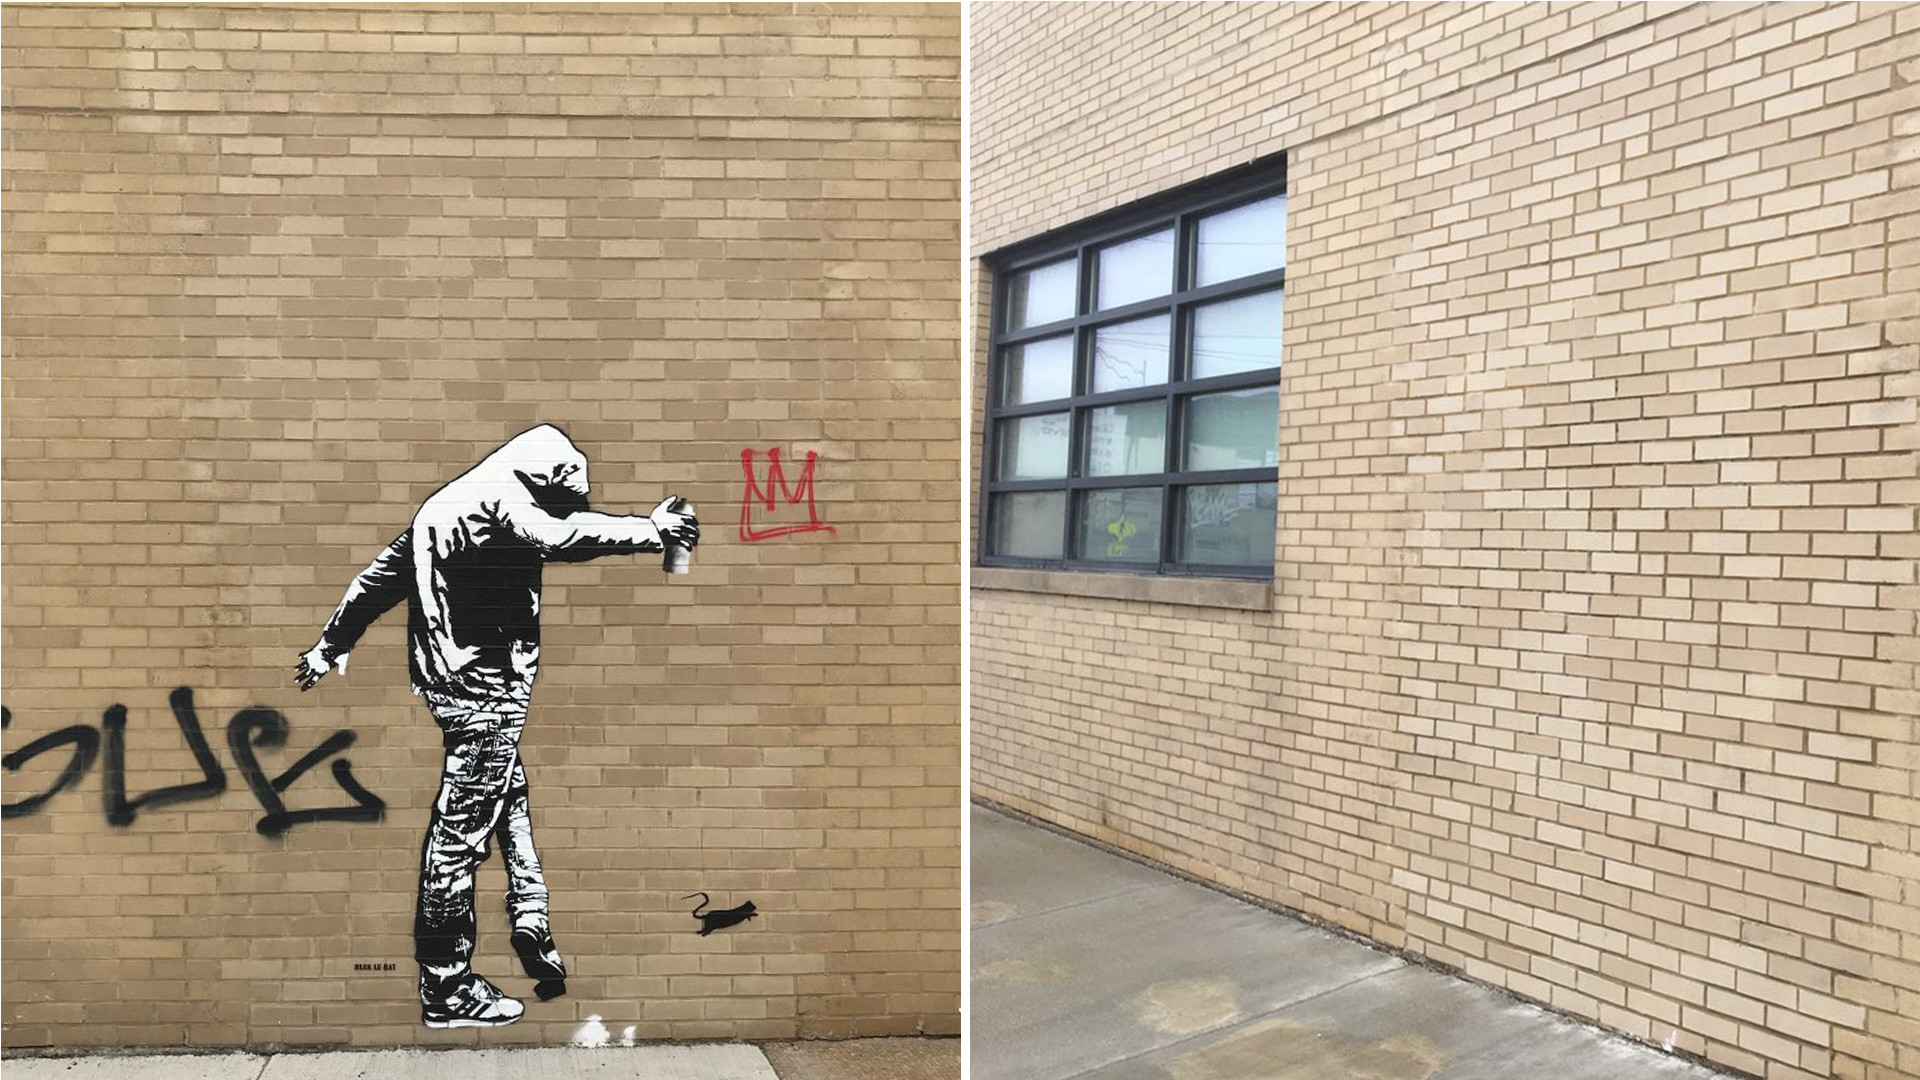 Graffiti cleanup 'blitz' ahead of Amazon visit wipes out street art at Cards Against Humanity HQ